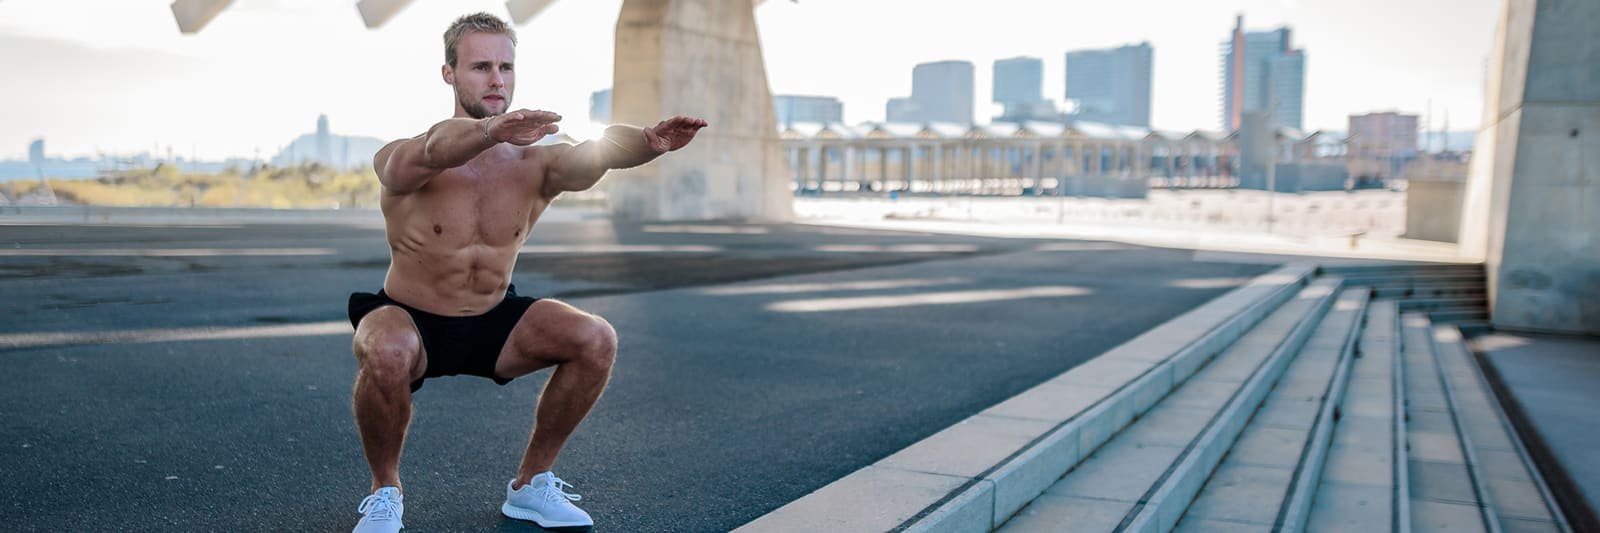 COMBINING STRENGTH TRAINING AND RUNNING >> BEST 3 WORKOUTS